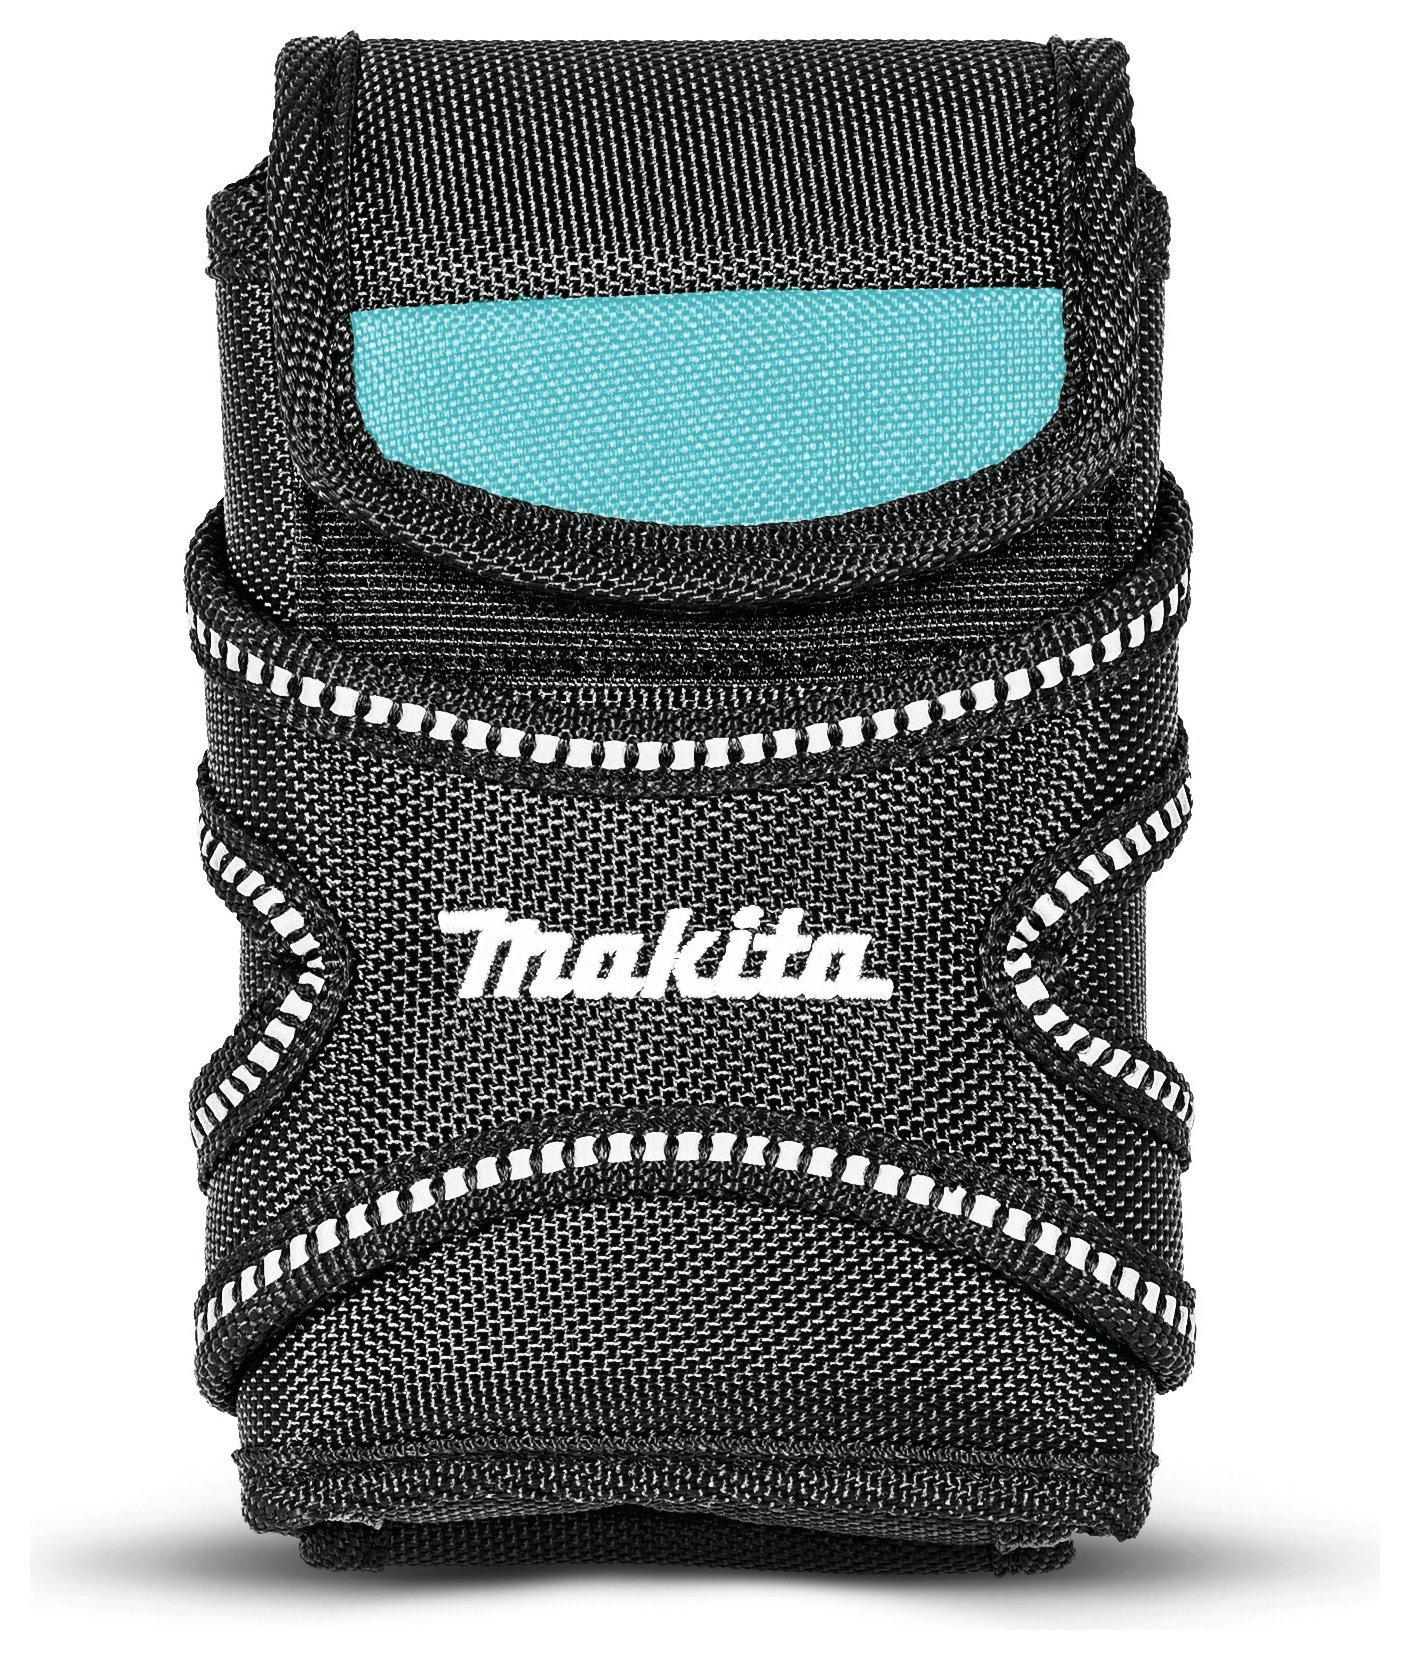 makita-smart-phone-holder